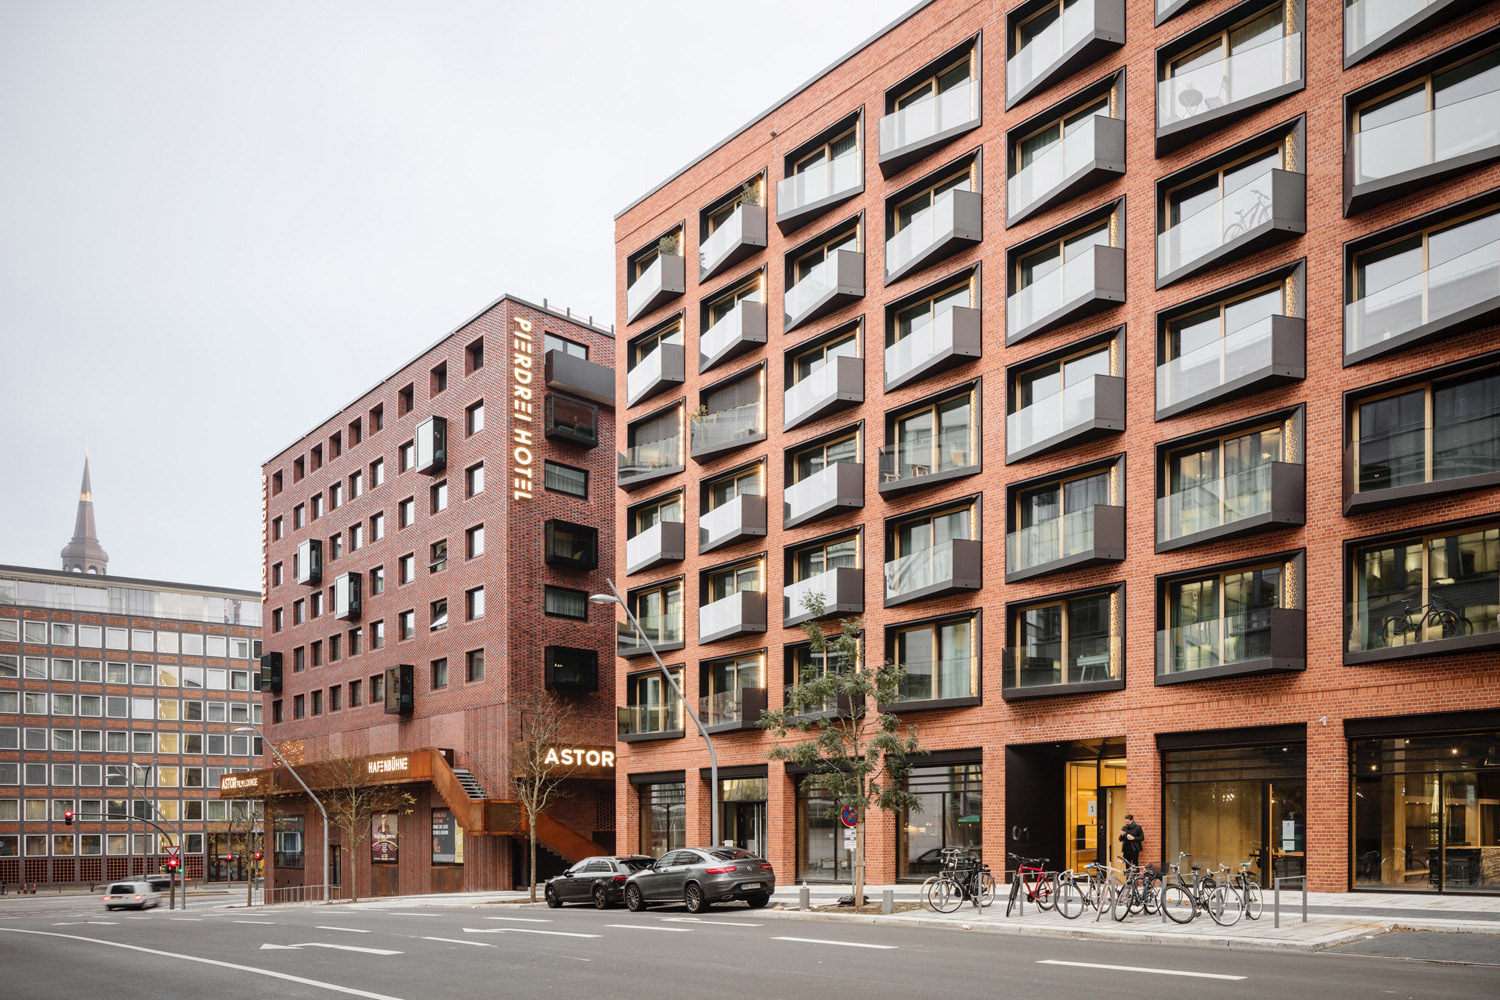 The historic Speicherstadt served as inspiration in the open and flexible building structure Marcus Bredt